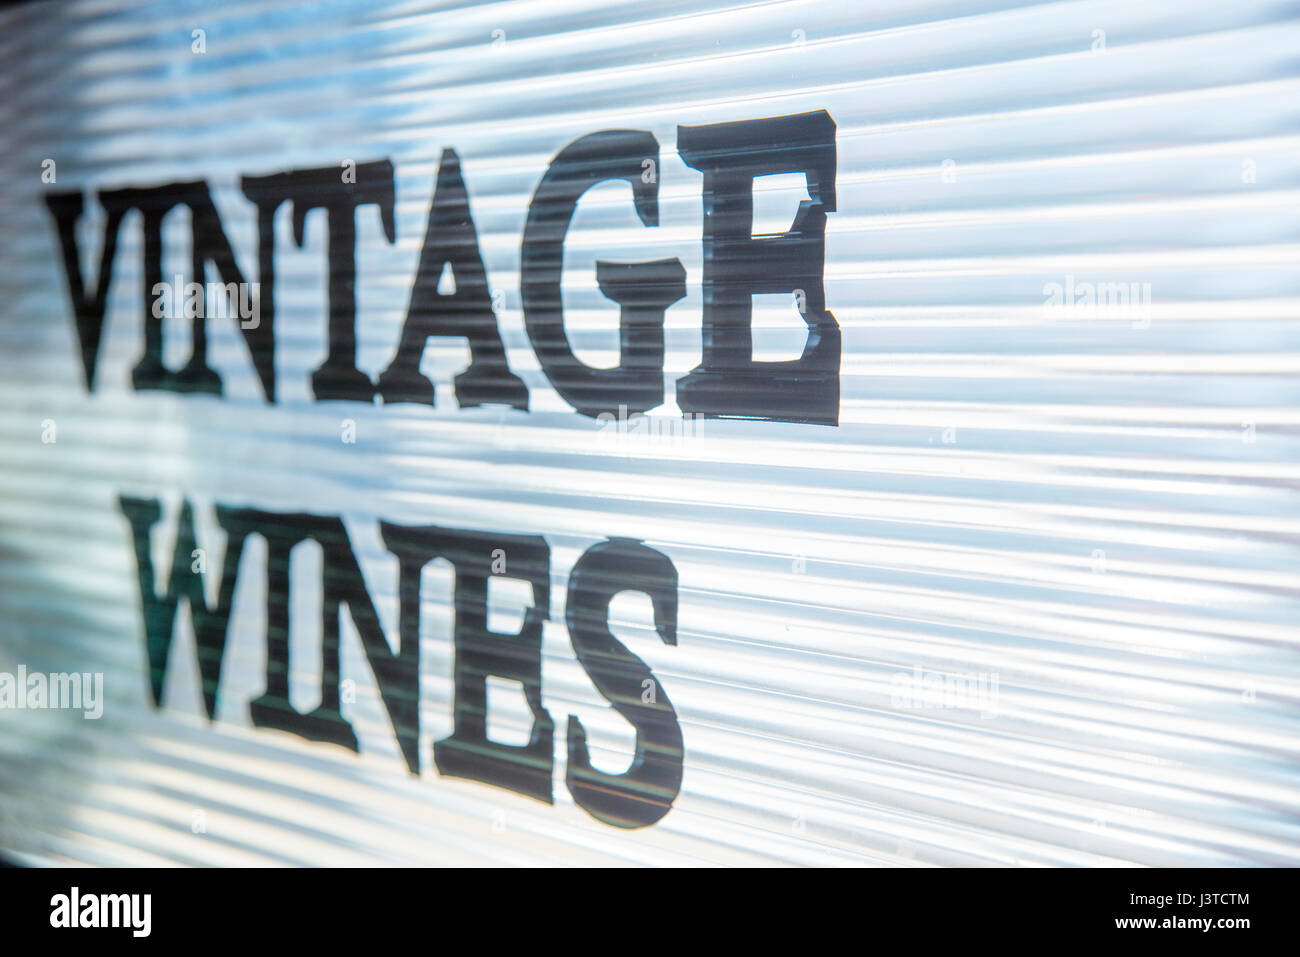 Vintage wines, written on glass surface. - Stock Image